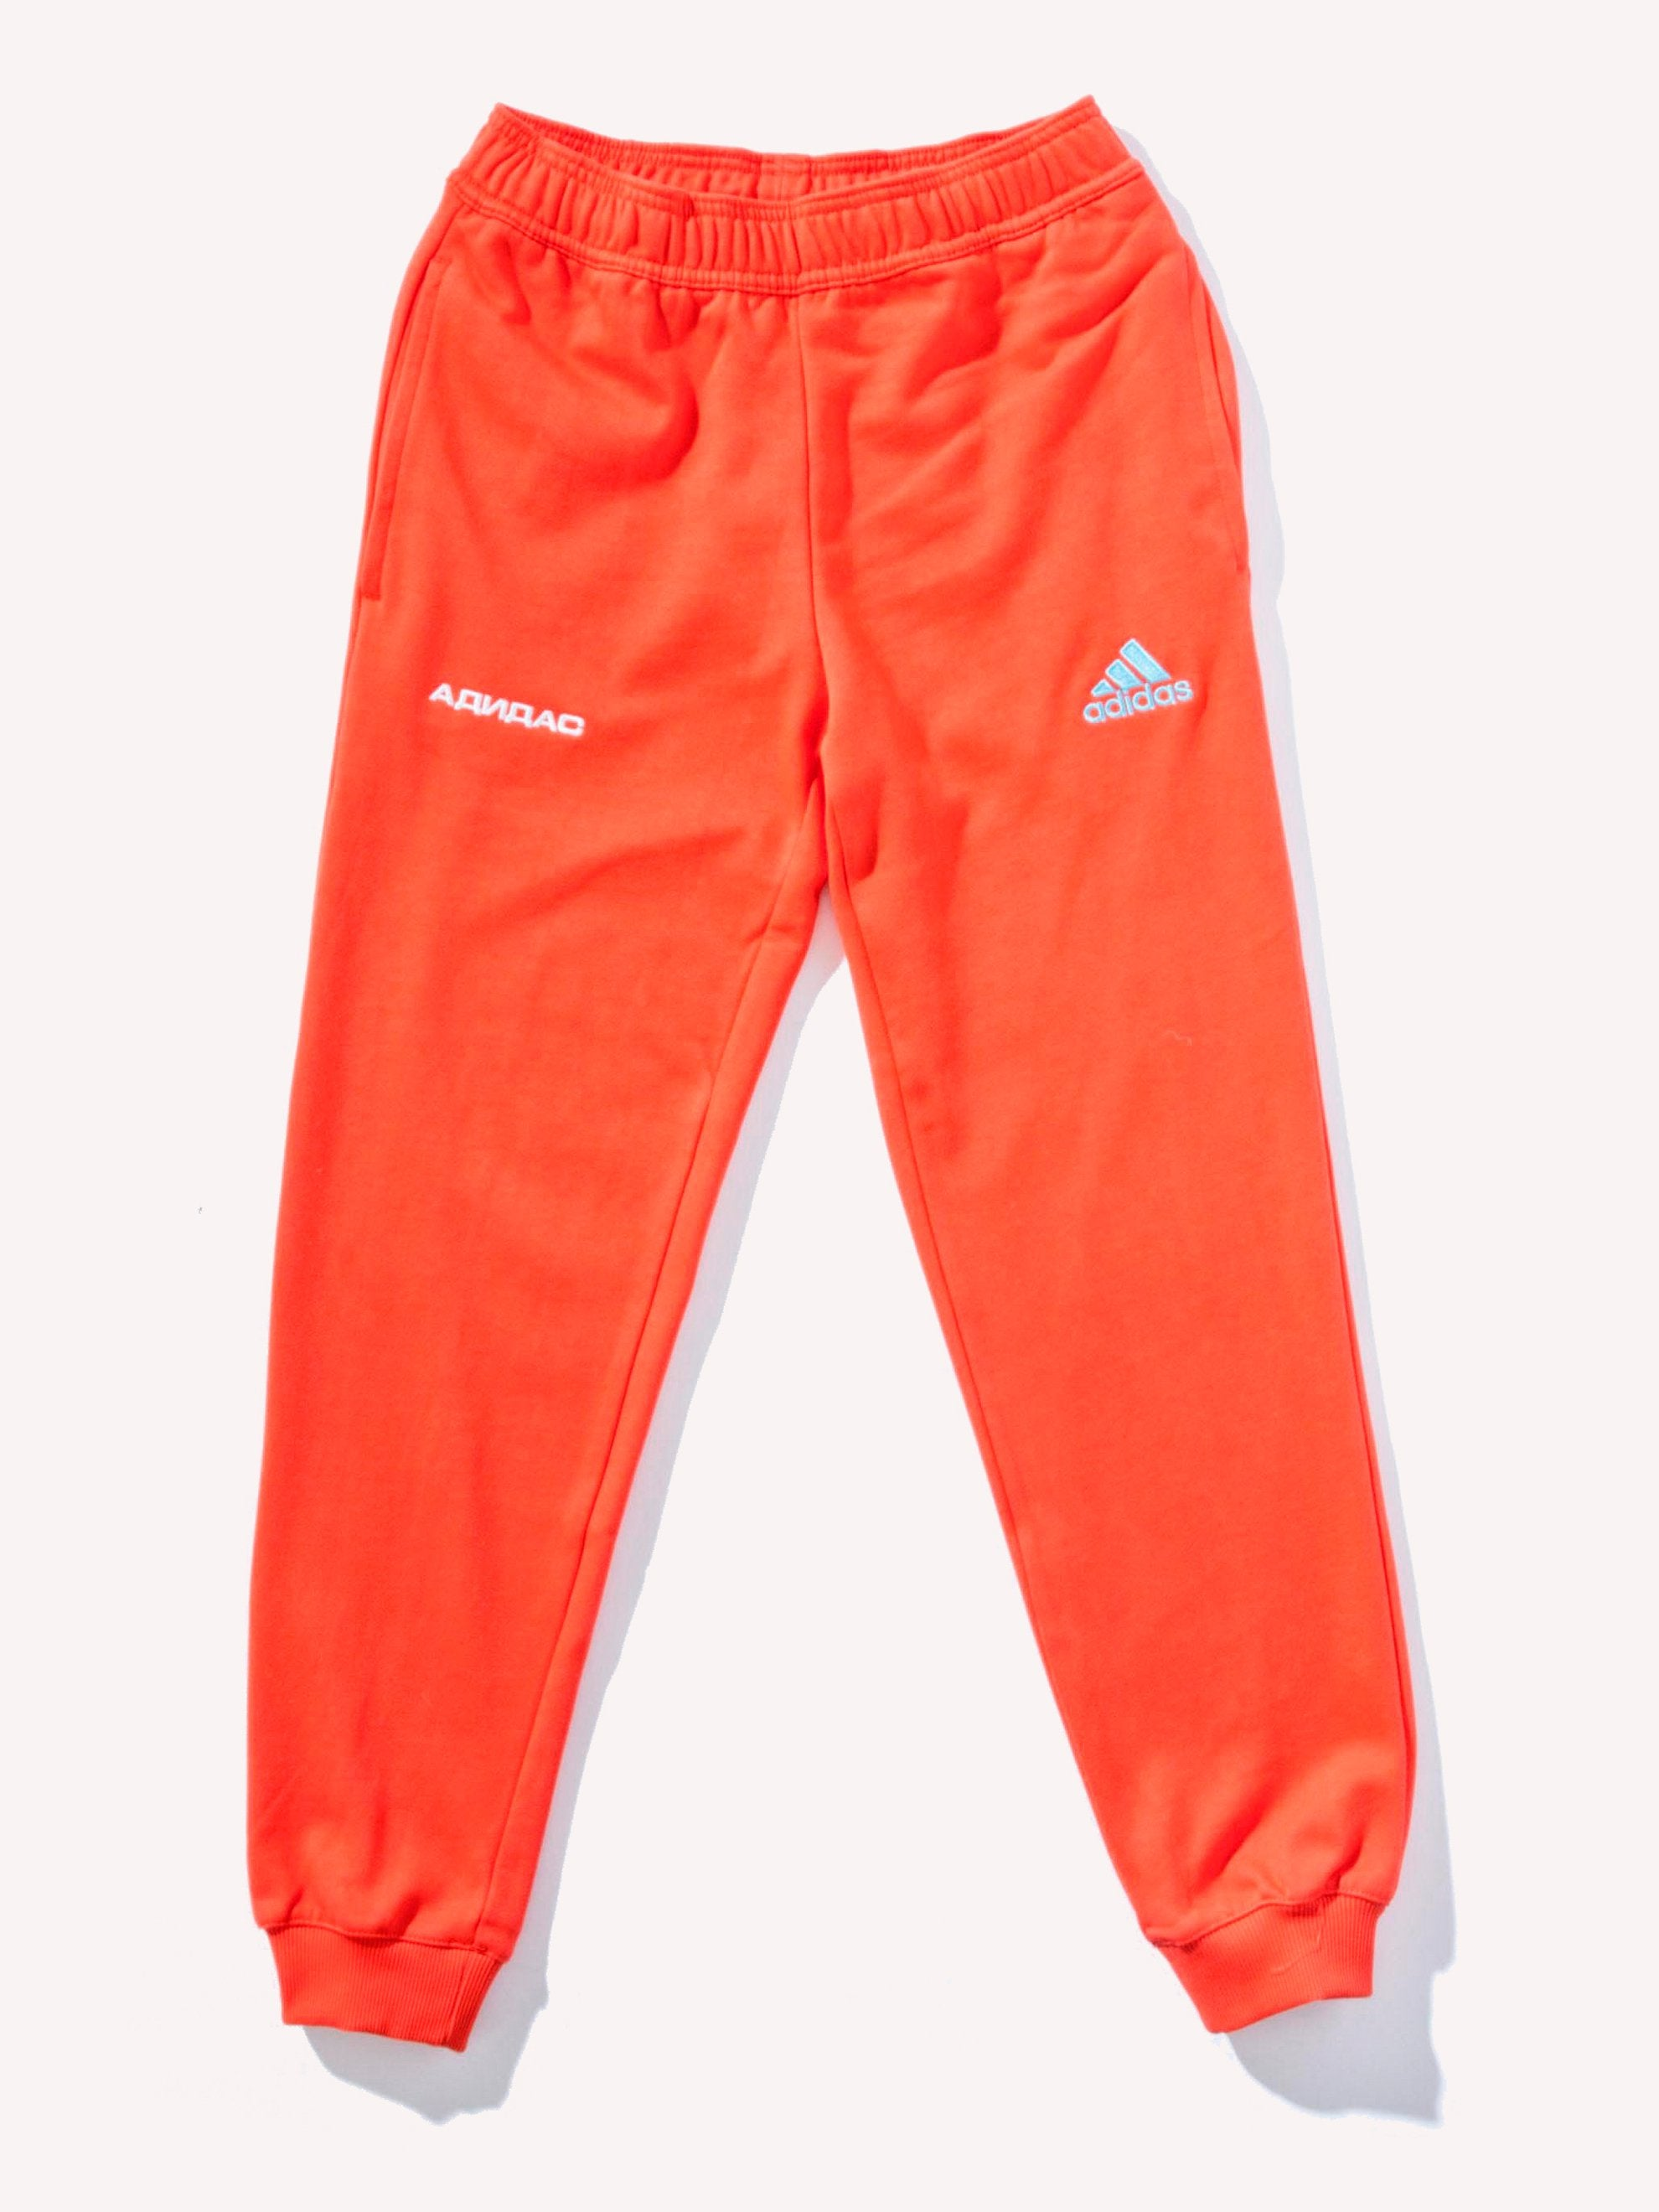 Orange Adidas Sweatpants 1